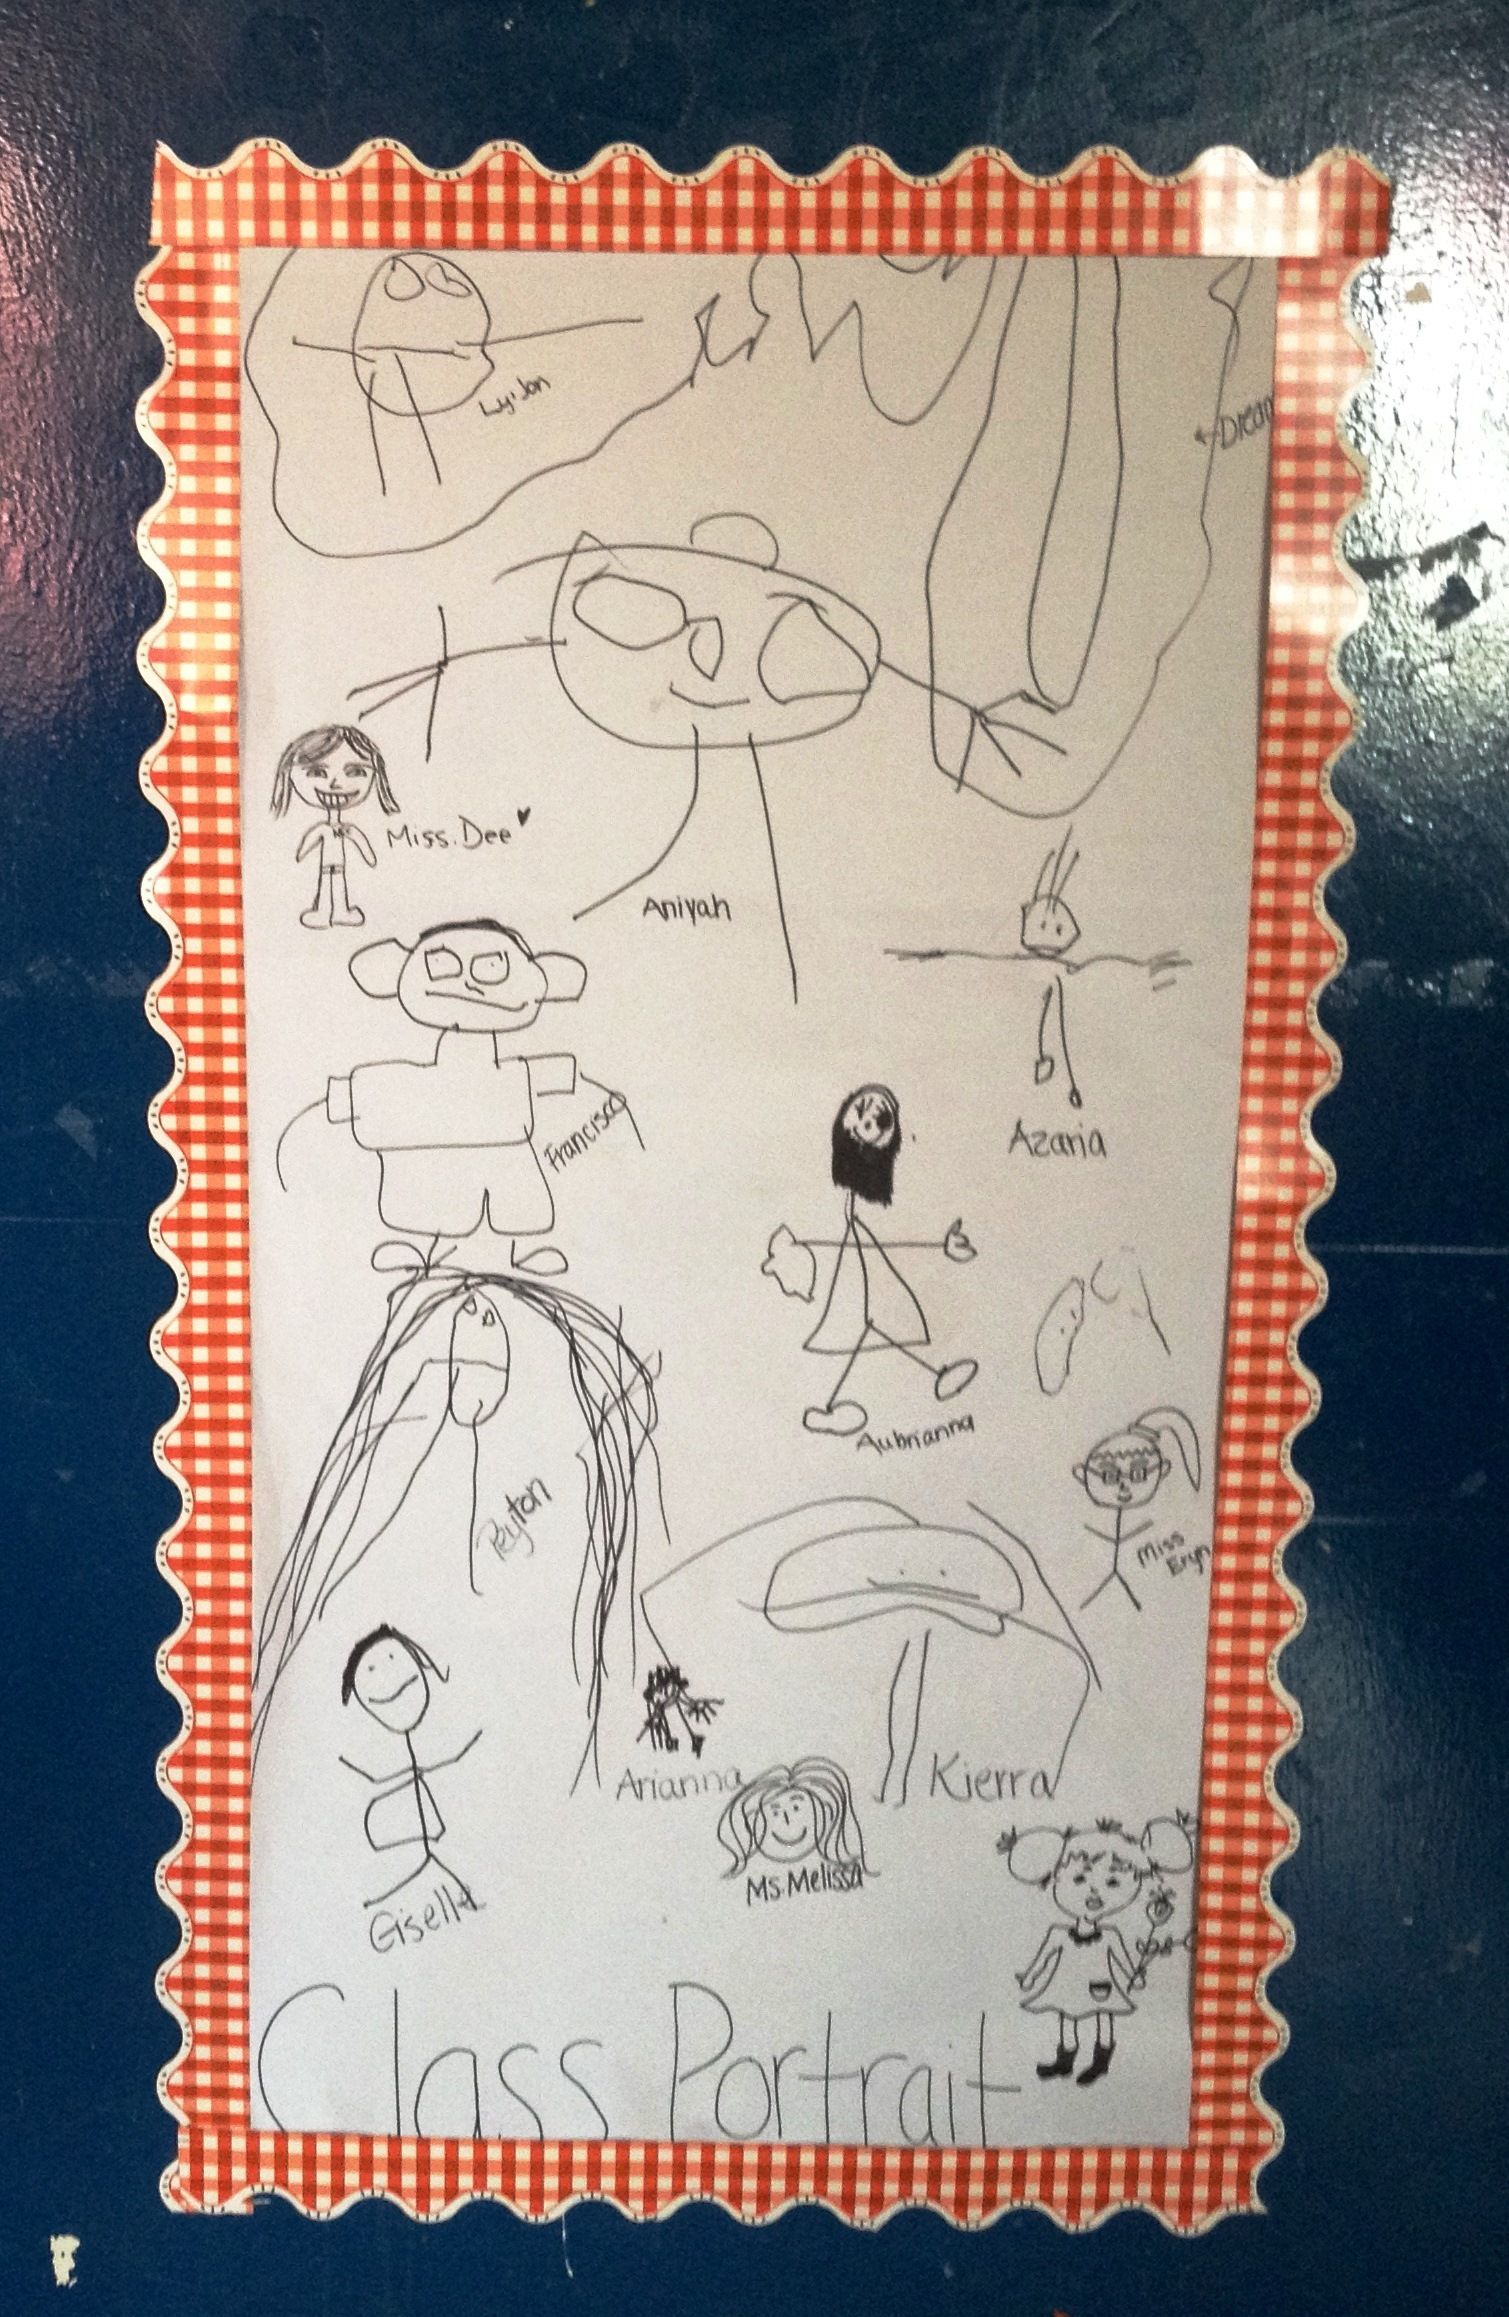 Class Portrait Each Child Participate By Drawing A Self